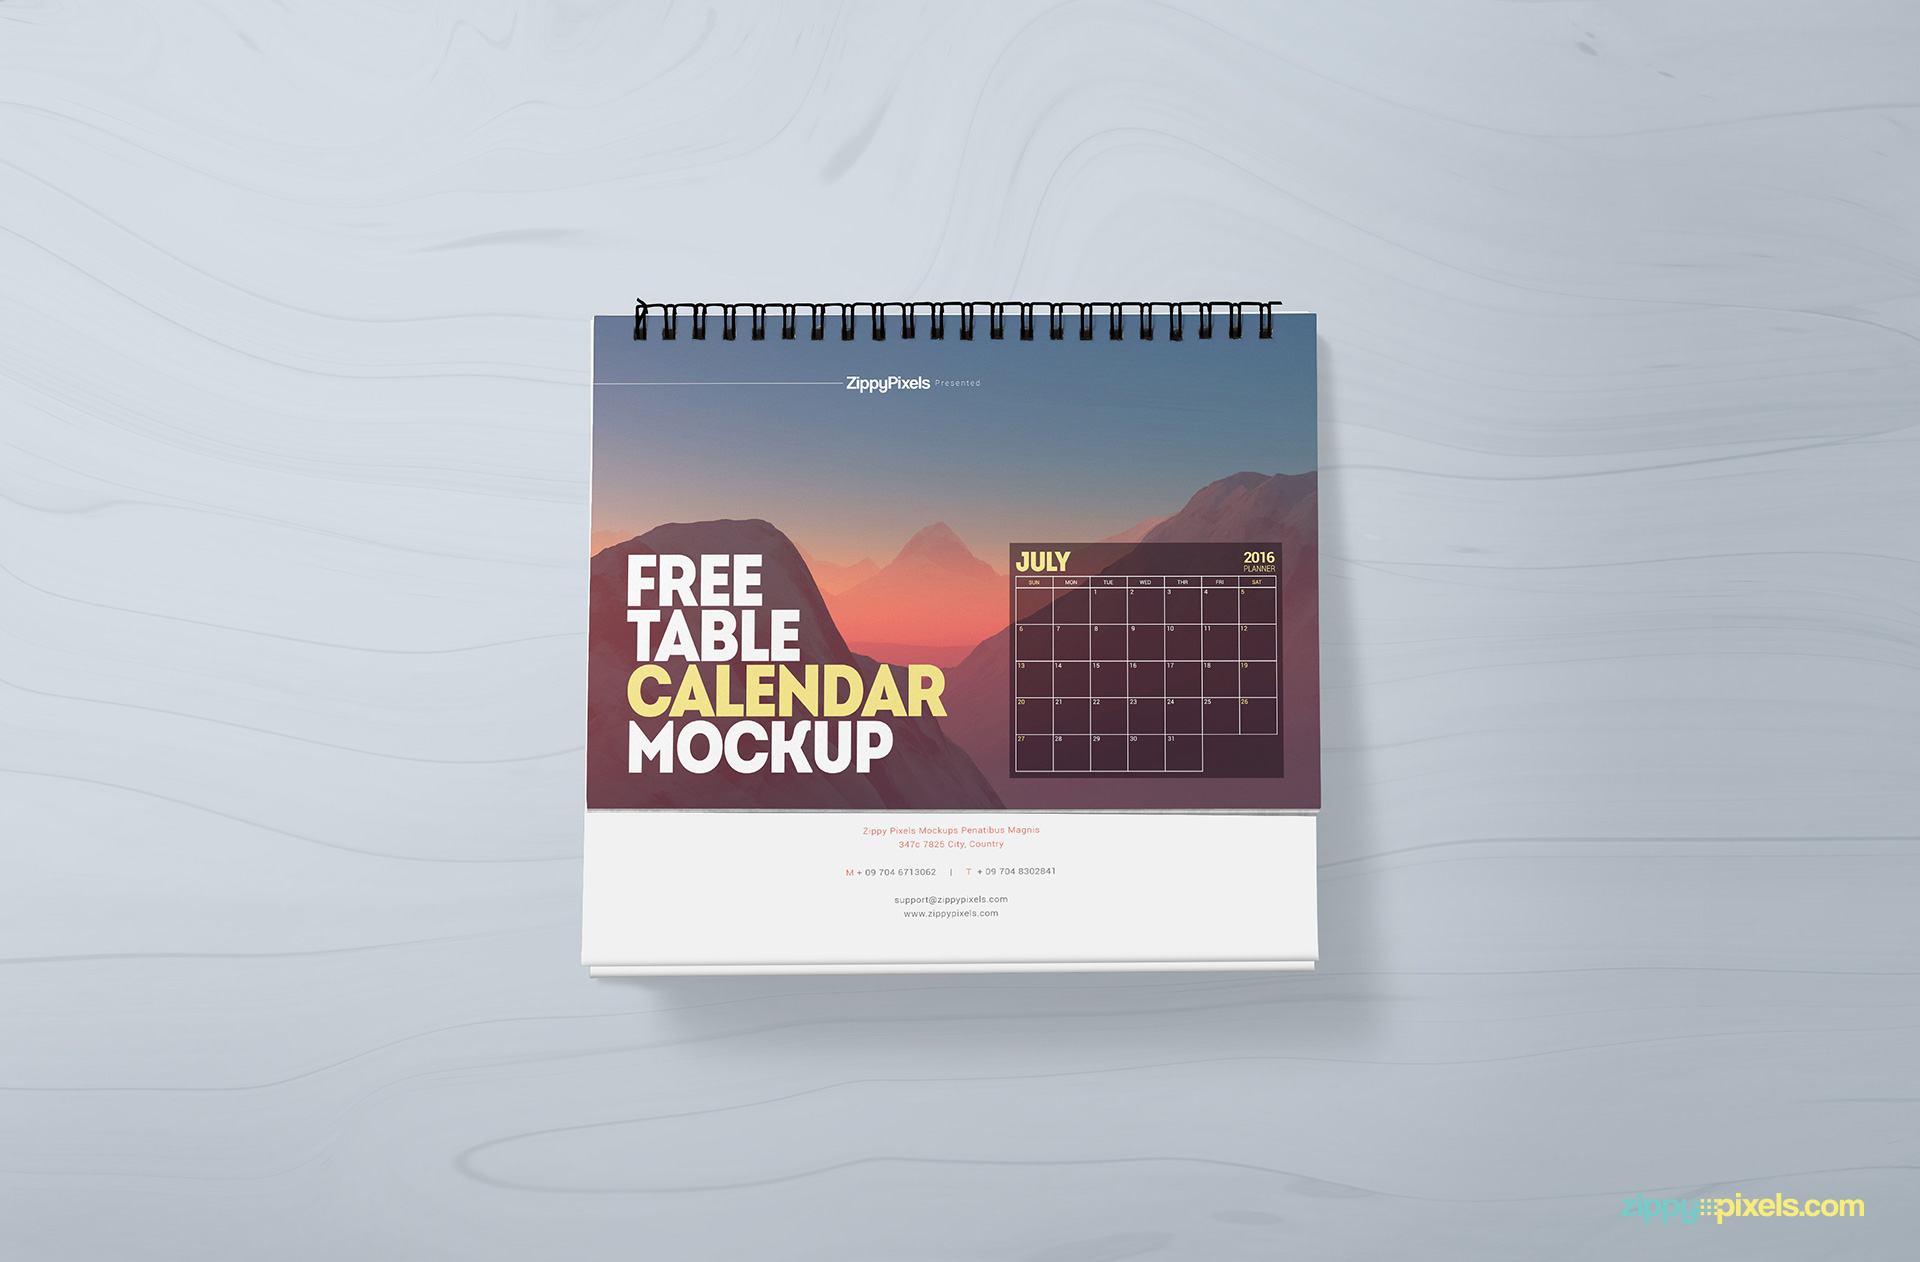 Free customizable table calendar mockup